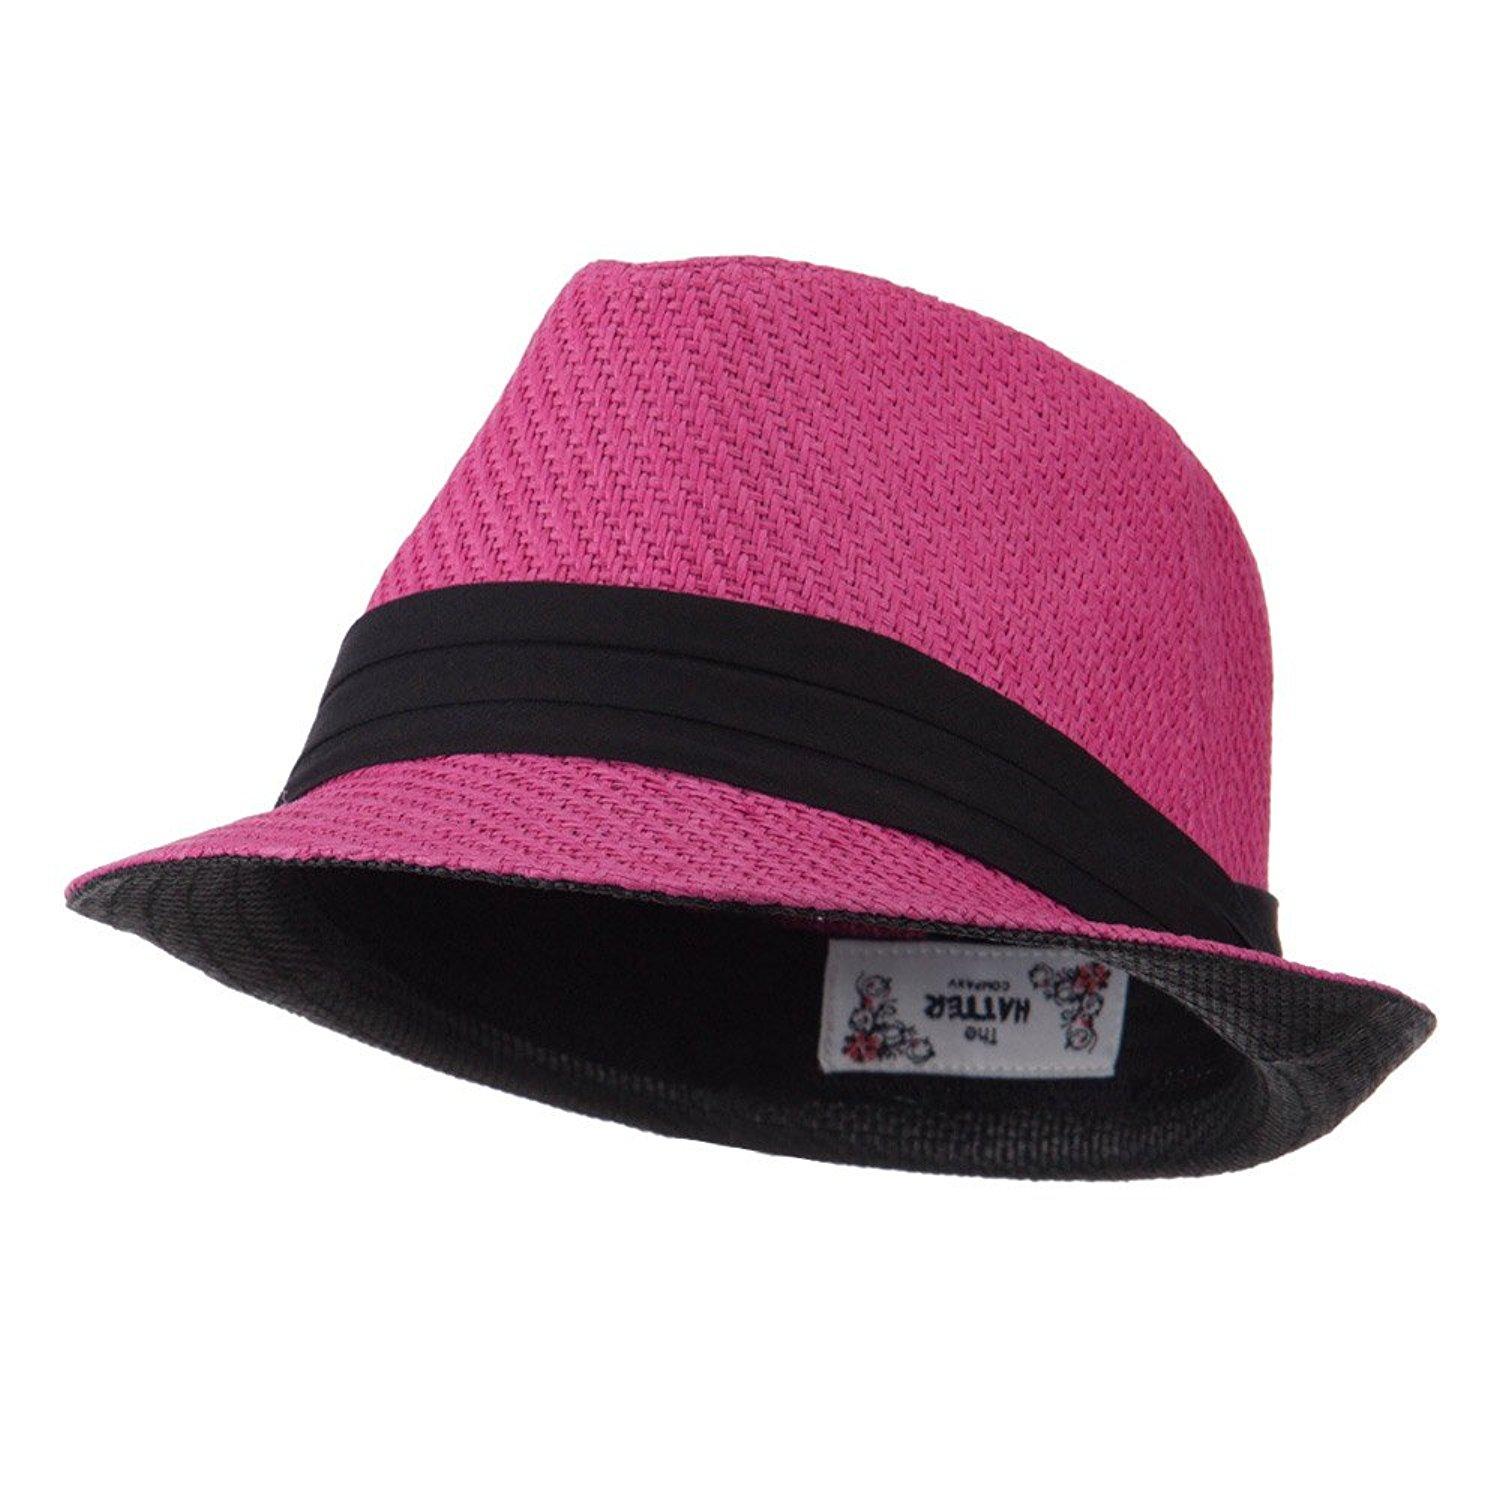 65f9be382b6 Get Quotations · Toyo Straw Fedora Hat with Black Band - OSFM